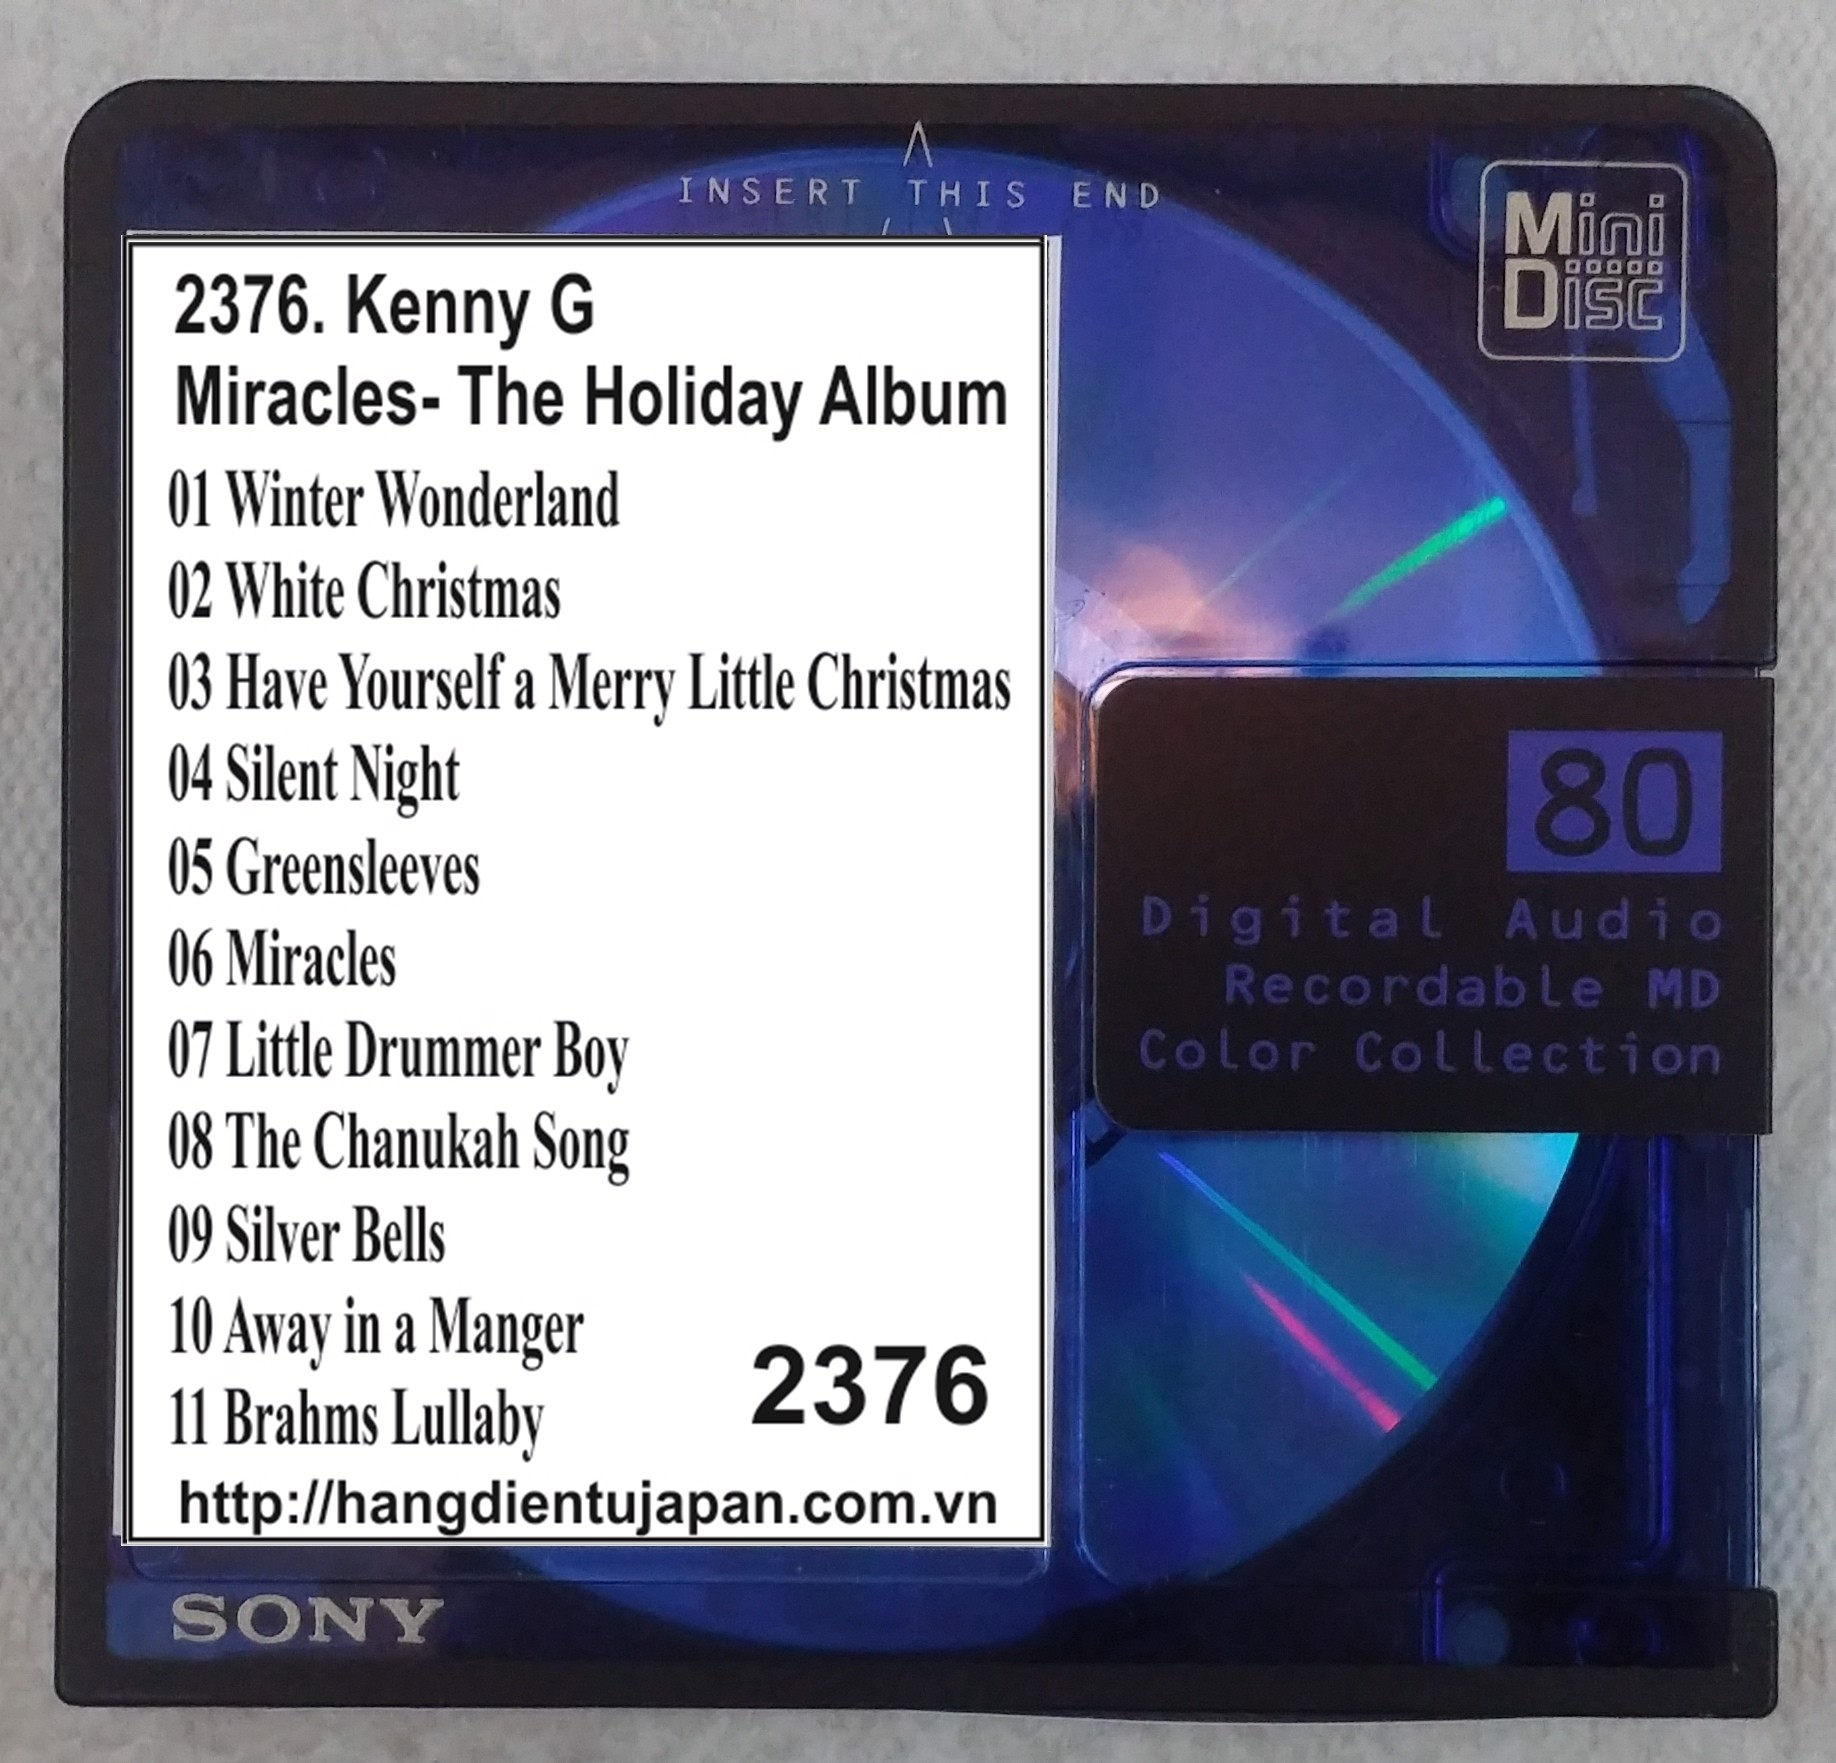 2376. Kenny G - Miracles- The Holiday Album